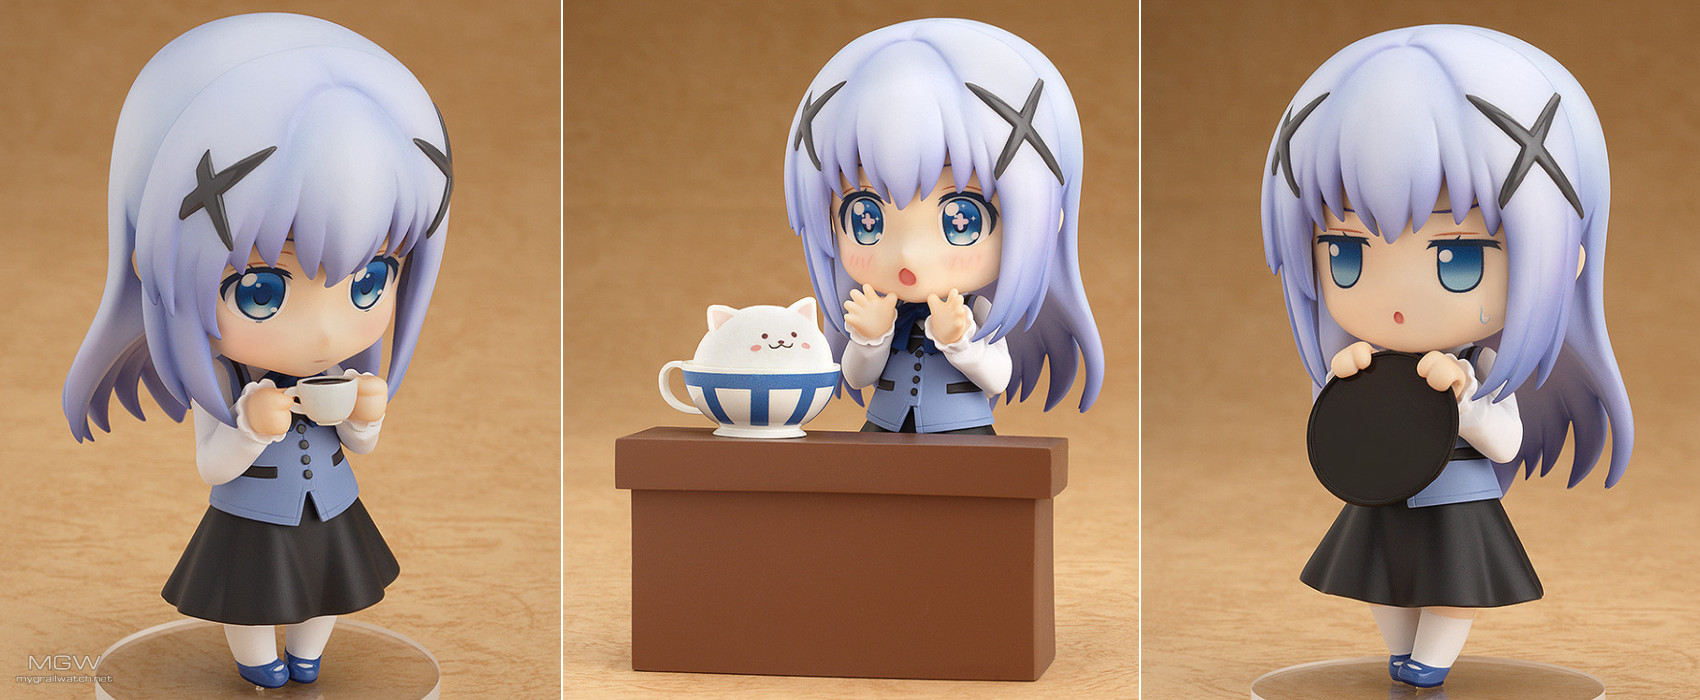 Nendoroid Chino by Good Smile Company from Is the Order a Rabbit